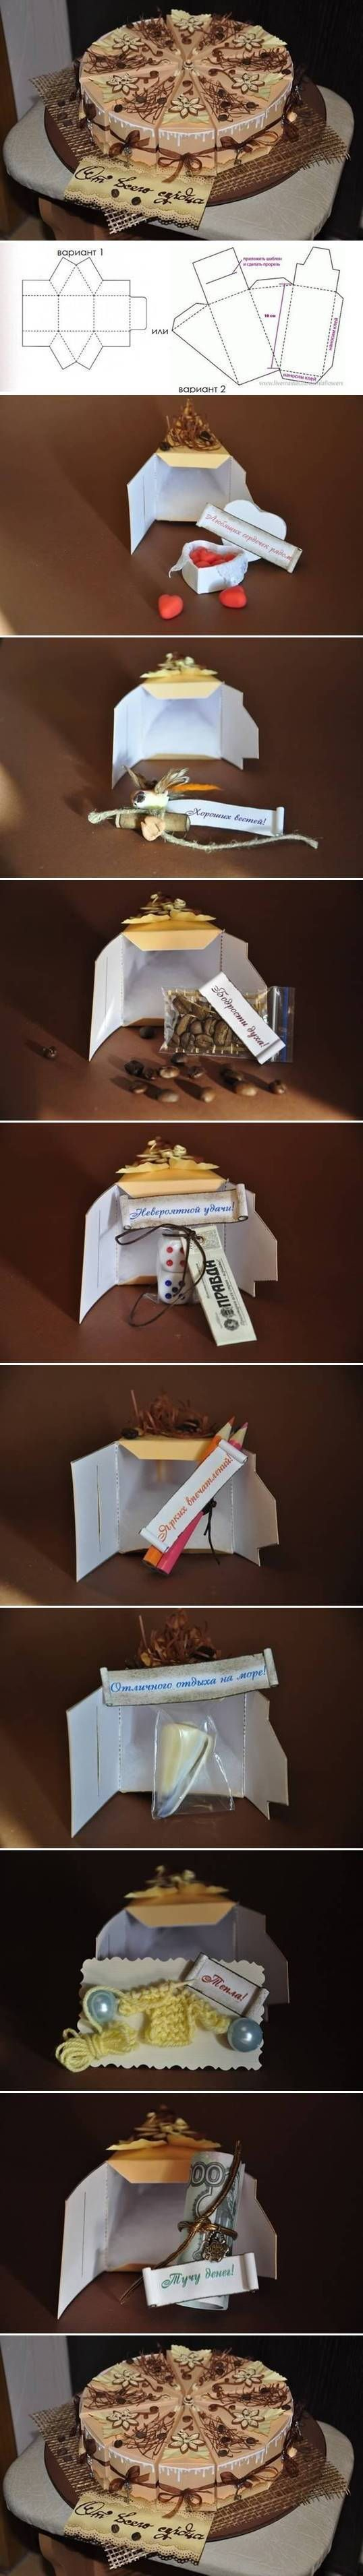 DIY Cake Gift Box Template DIY Projects | UsefulDIY.com Follow us on Facebook ==> https://www.facebook.com/UsefulDiy